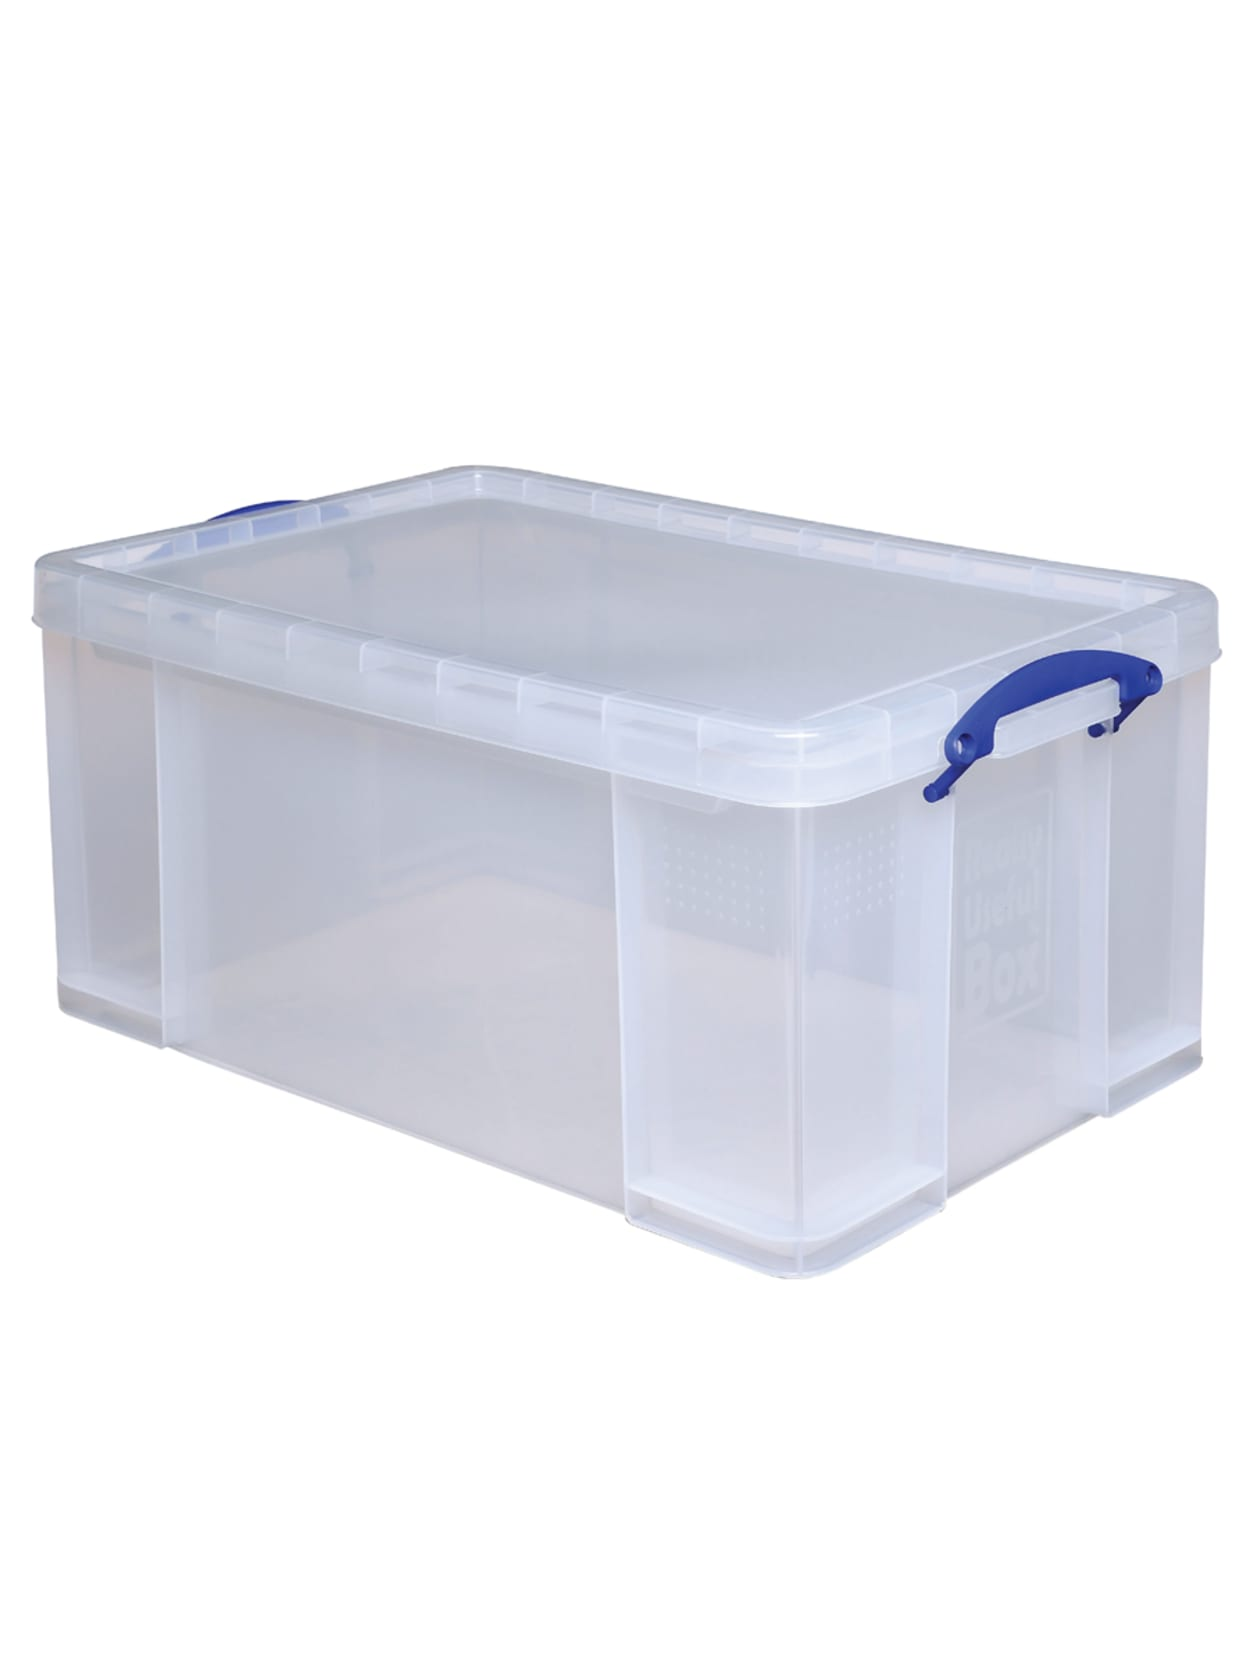 Really Useful Box Plastic Storage Box Clear Office Depot